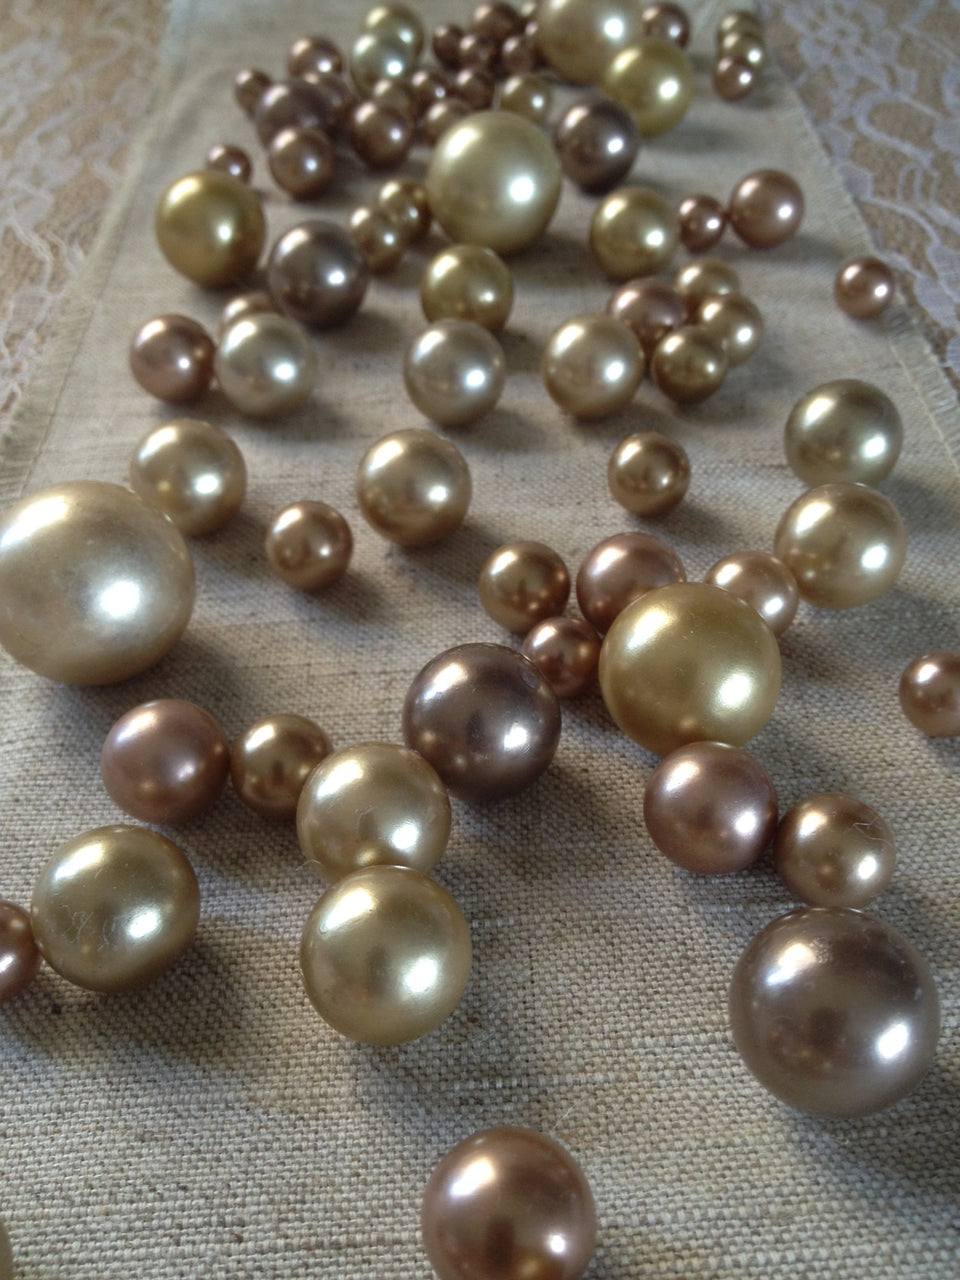 80 Vintage Pearl Table Scatters, Bronze Copper Gold Pearl Colors, Vase Filler Pearls, No Hole Pearls